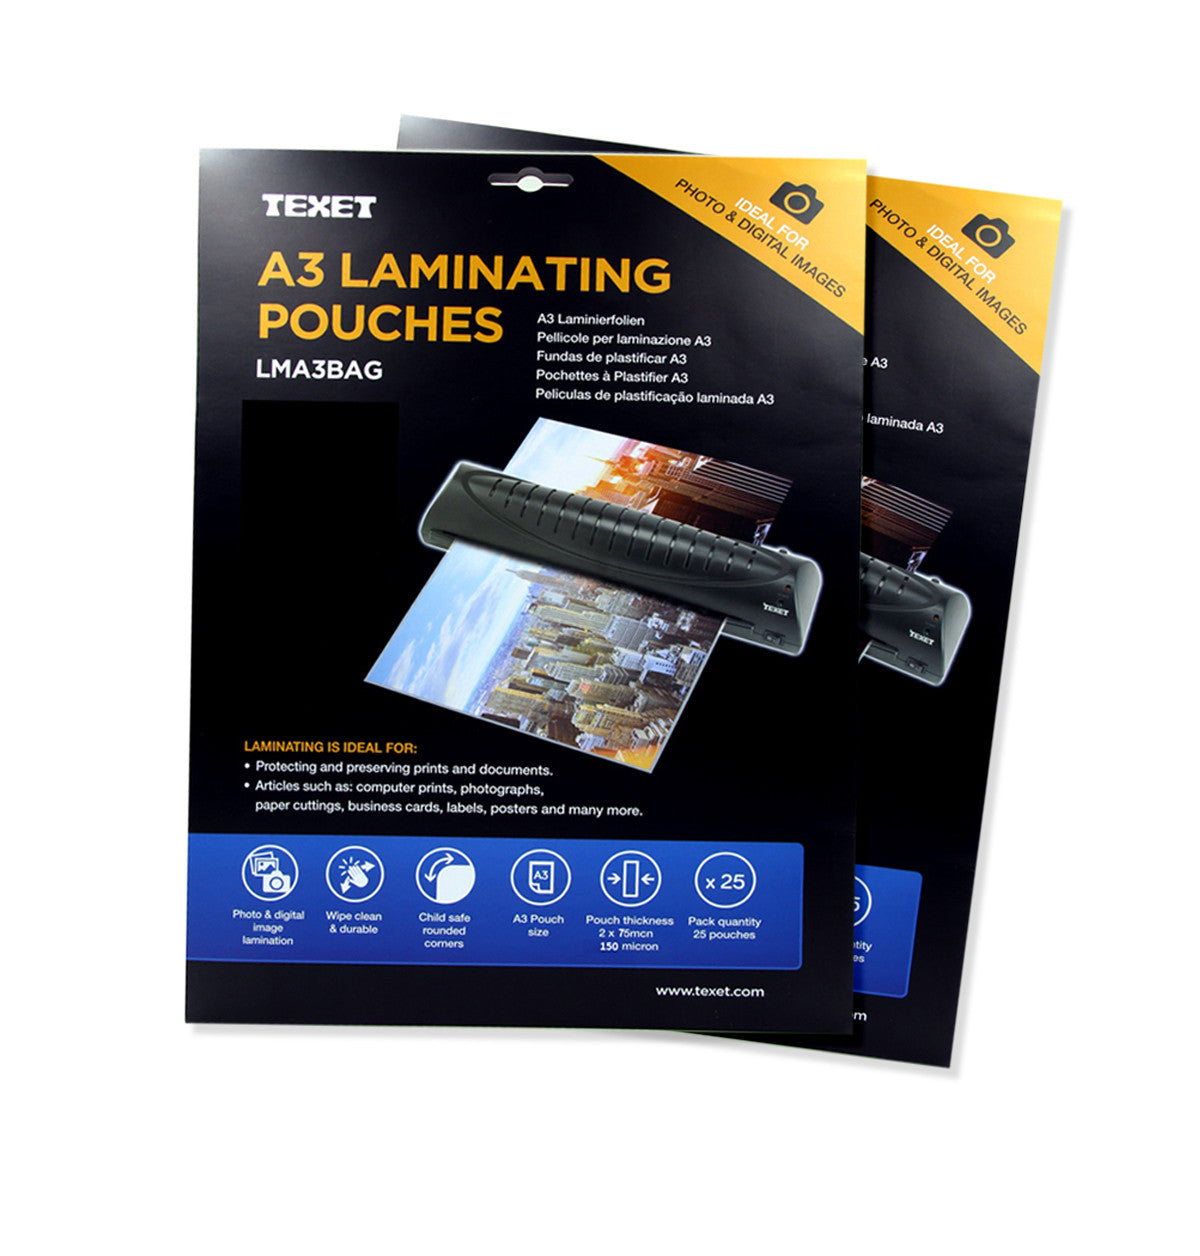 TEXET A3 High Quality laminating pouches - Pack of 50 pouches